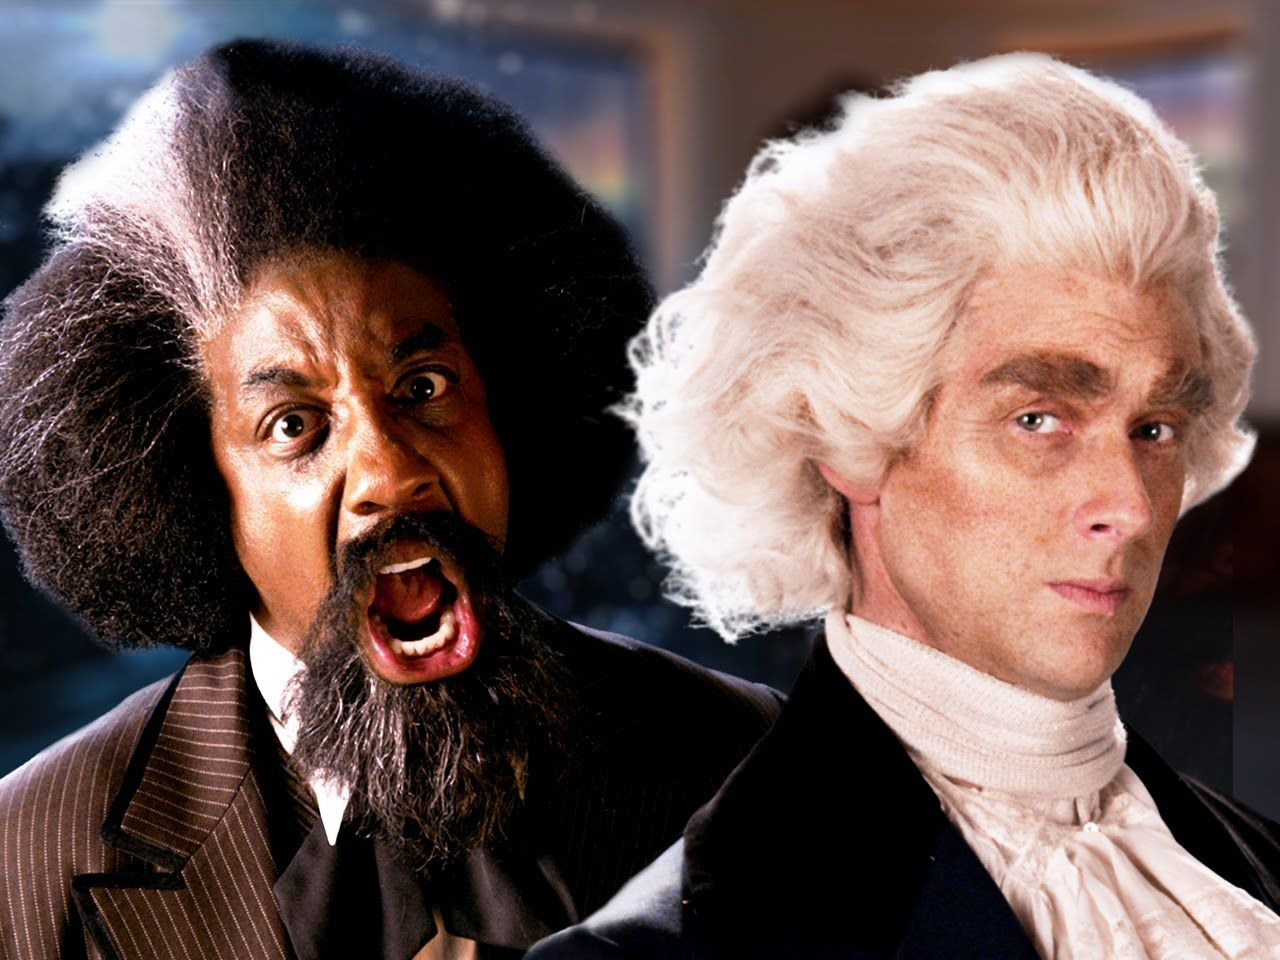 Frederick Douglass And Thomas Jefferson Face Off In Epic